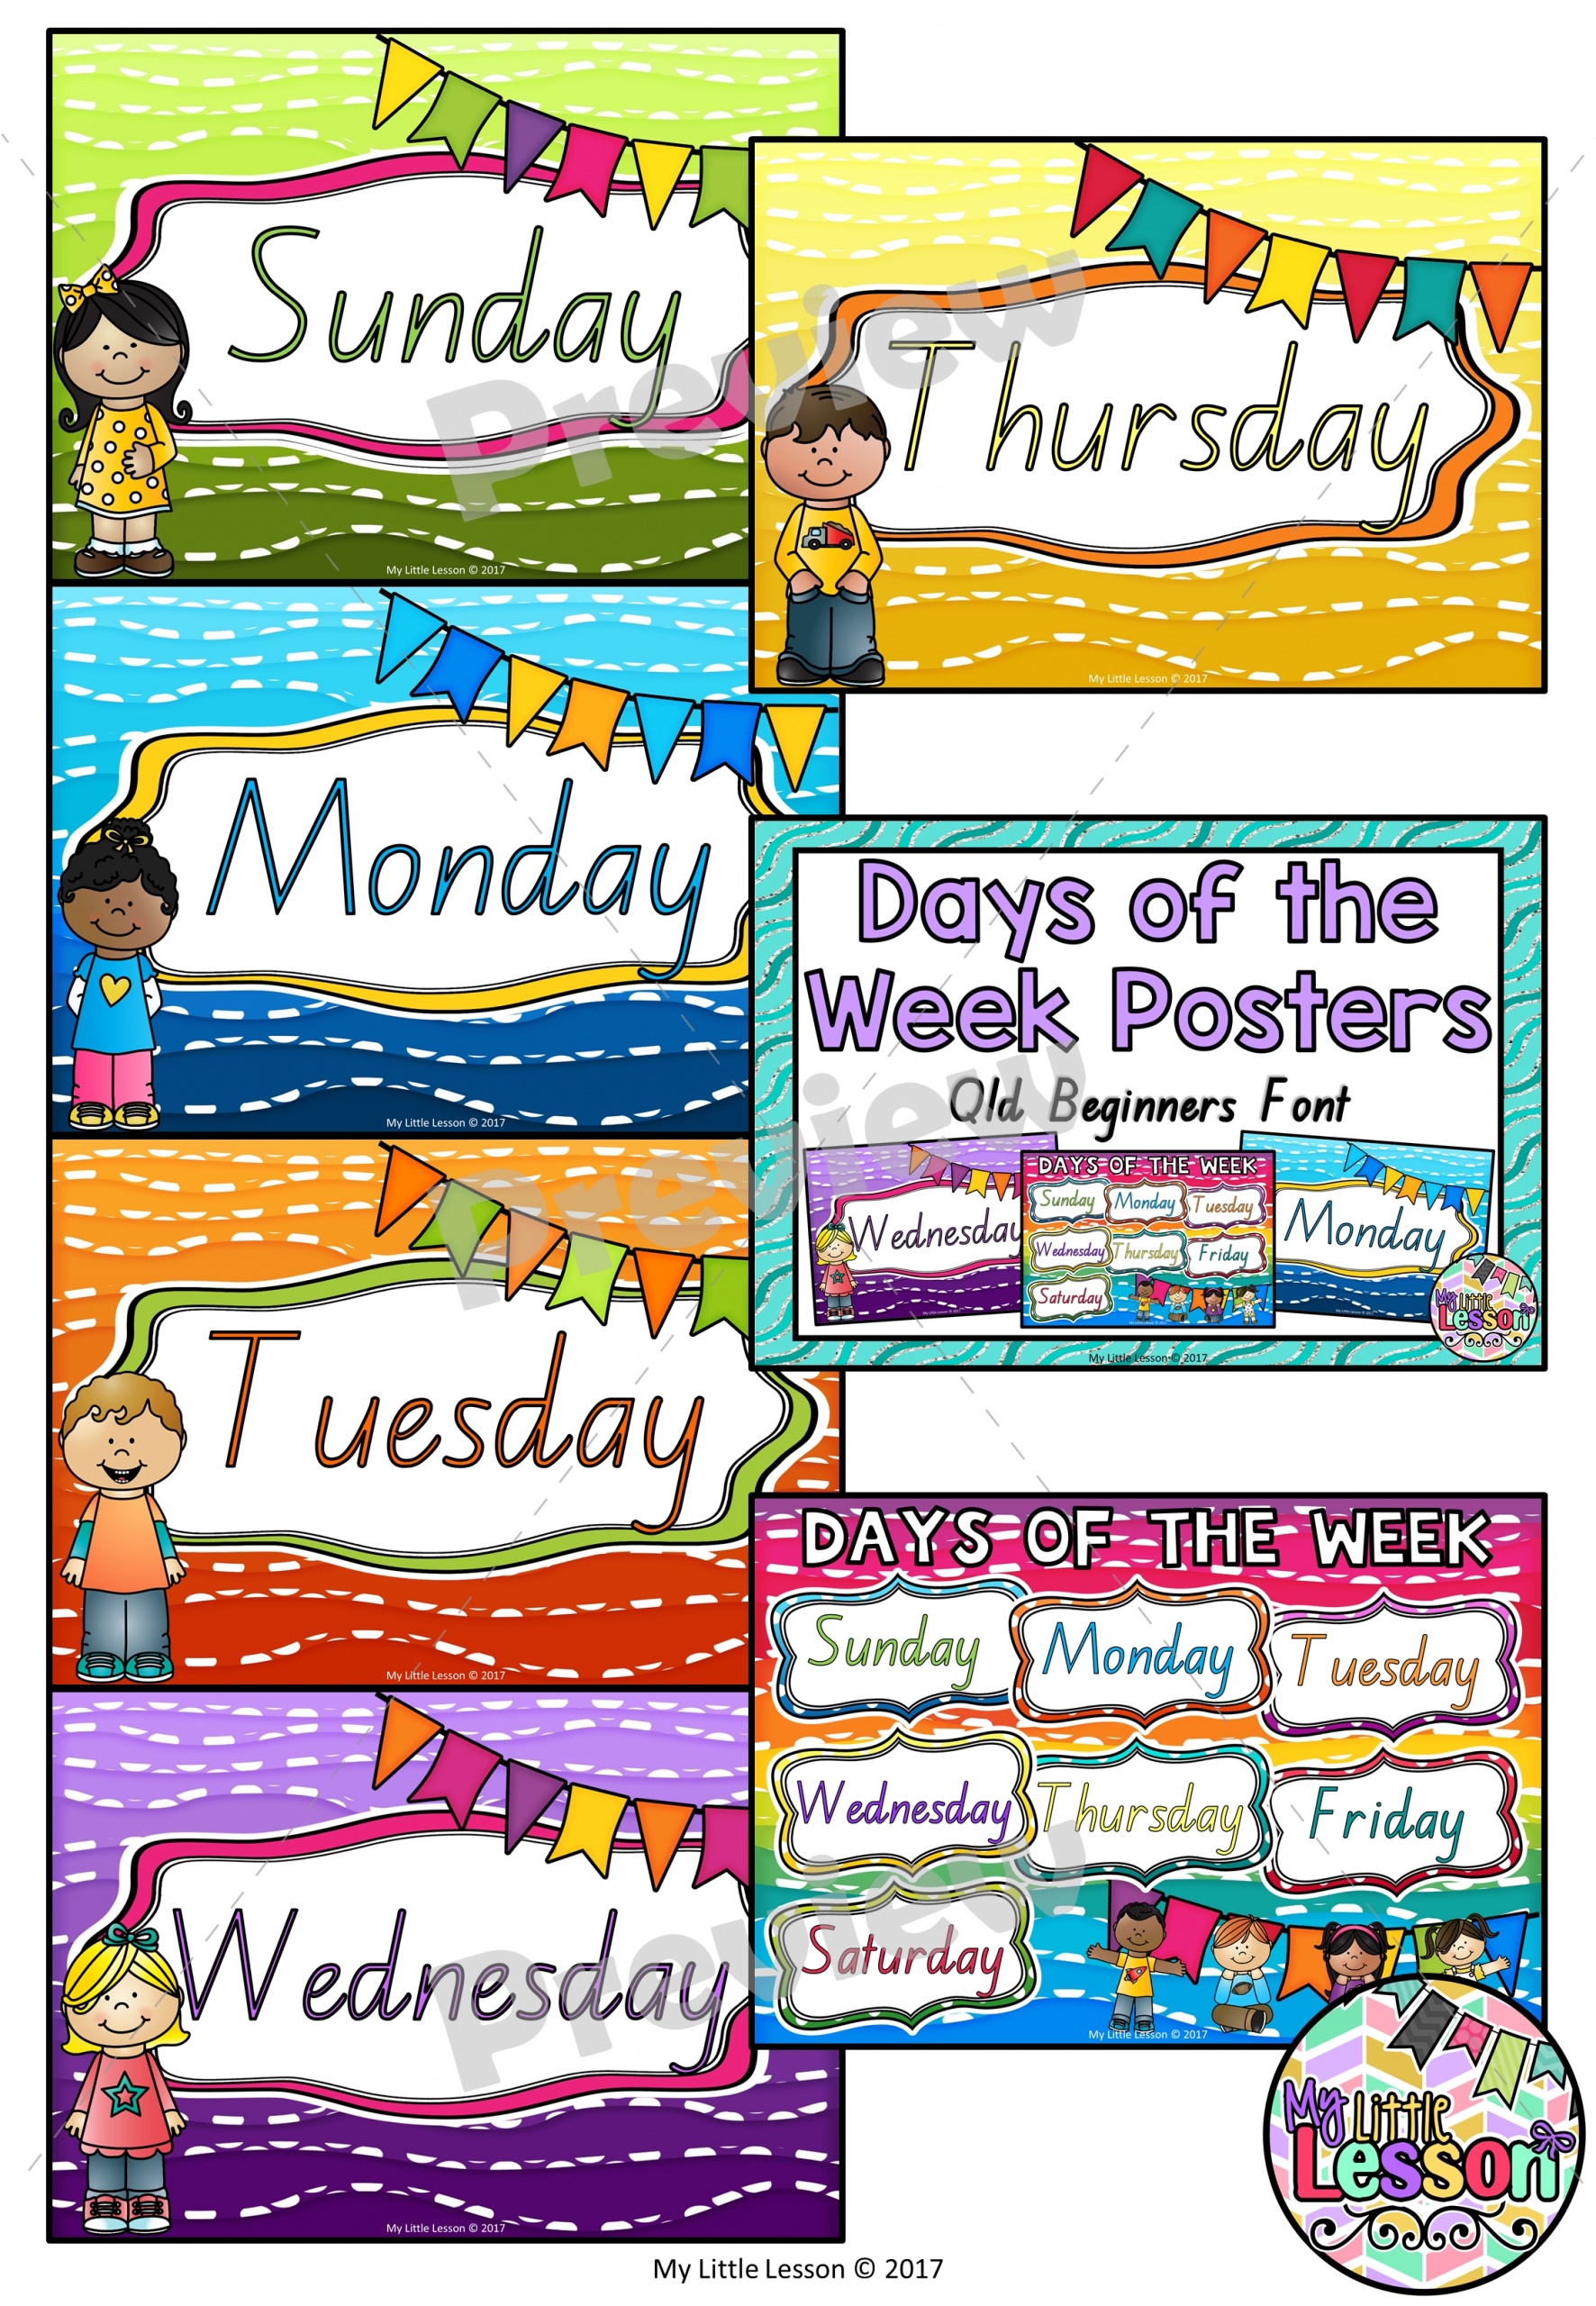 Days Of The Week Posters Qld Beginners Font - The Alphabet